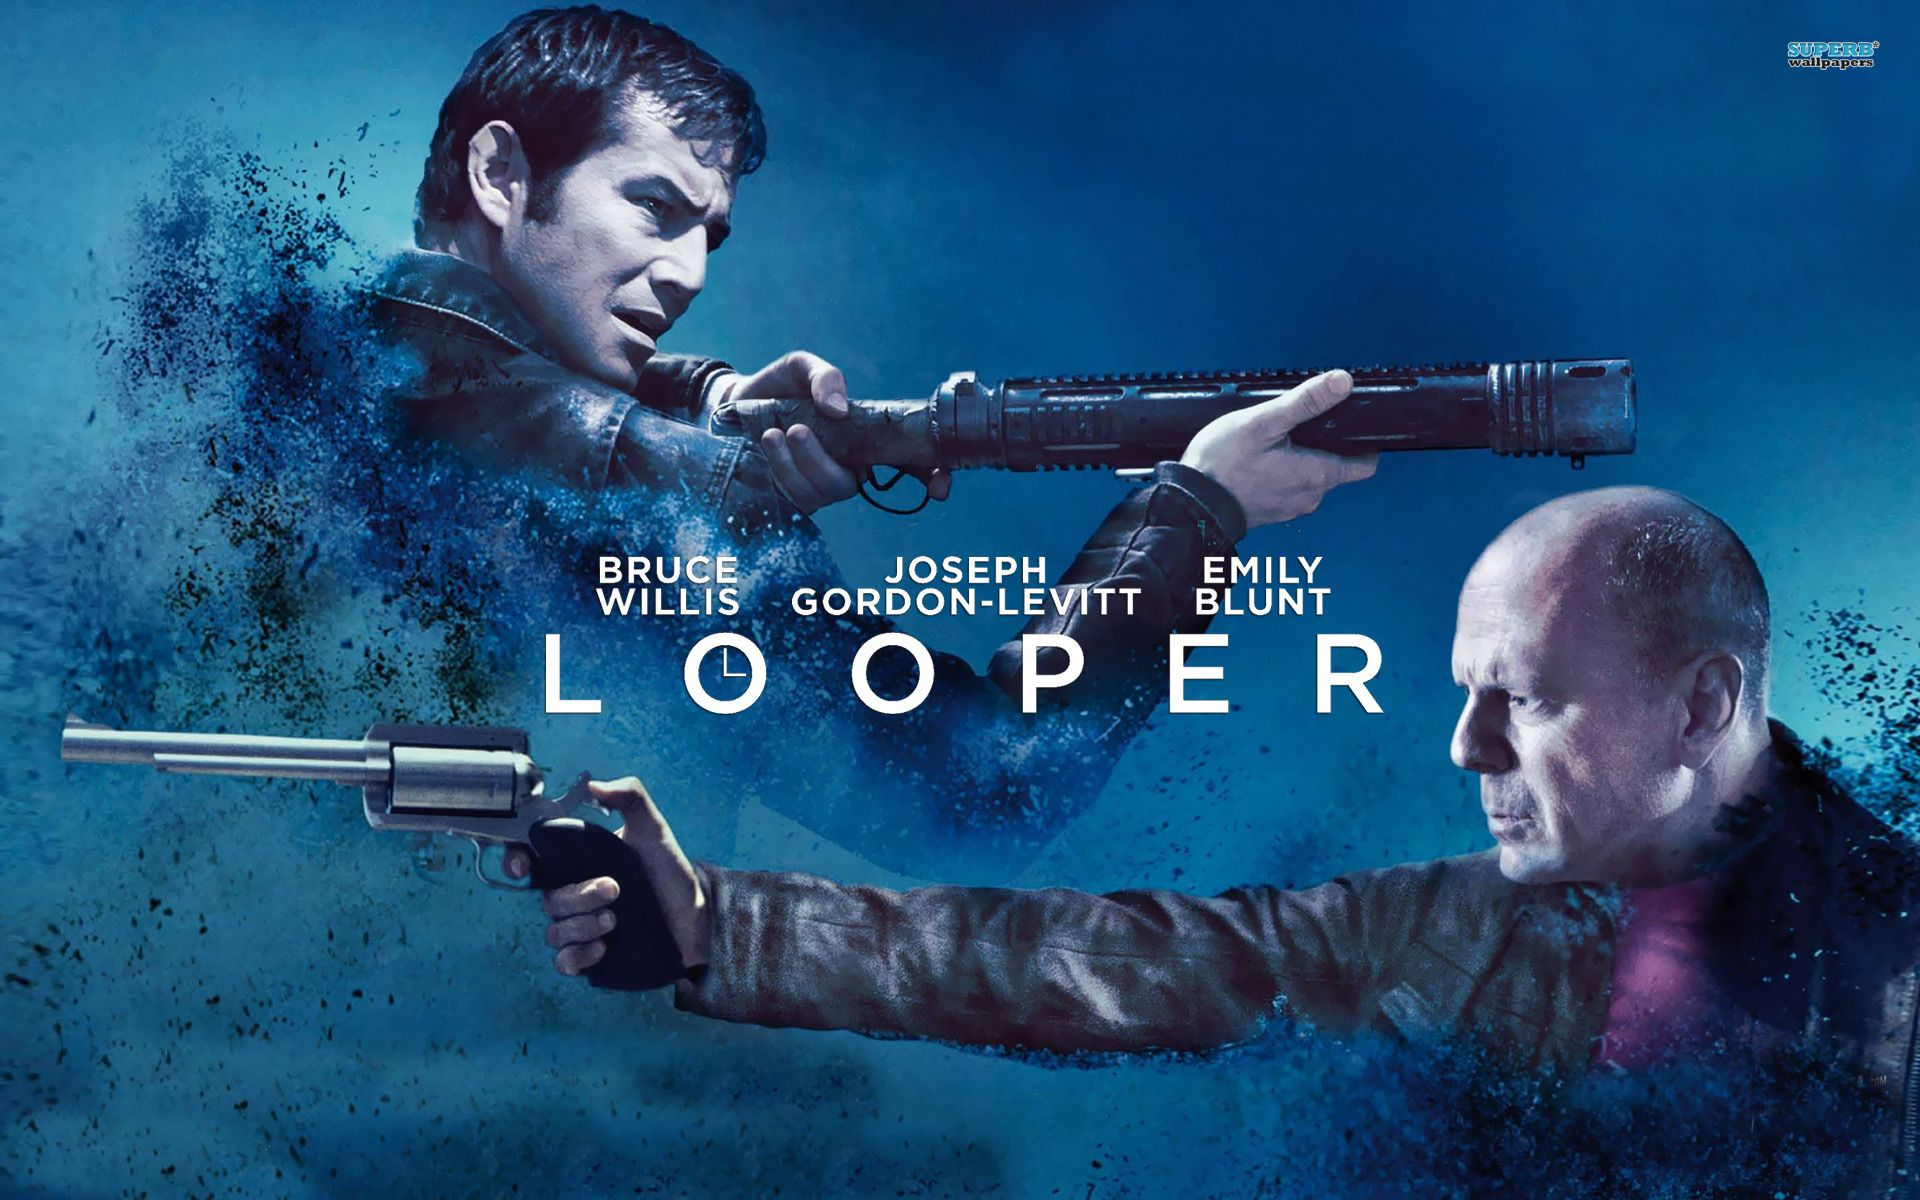 looper movie poster - Google Search